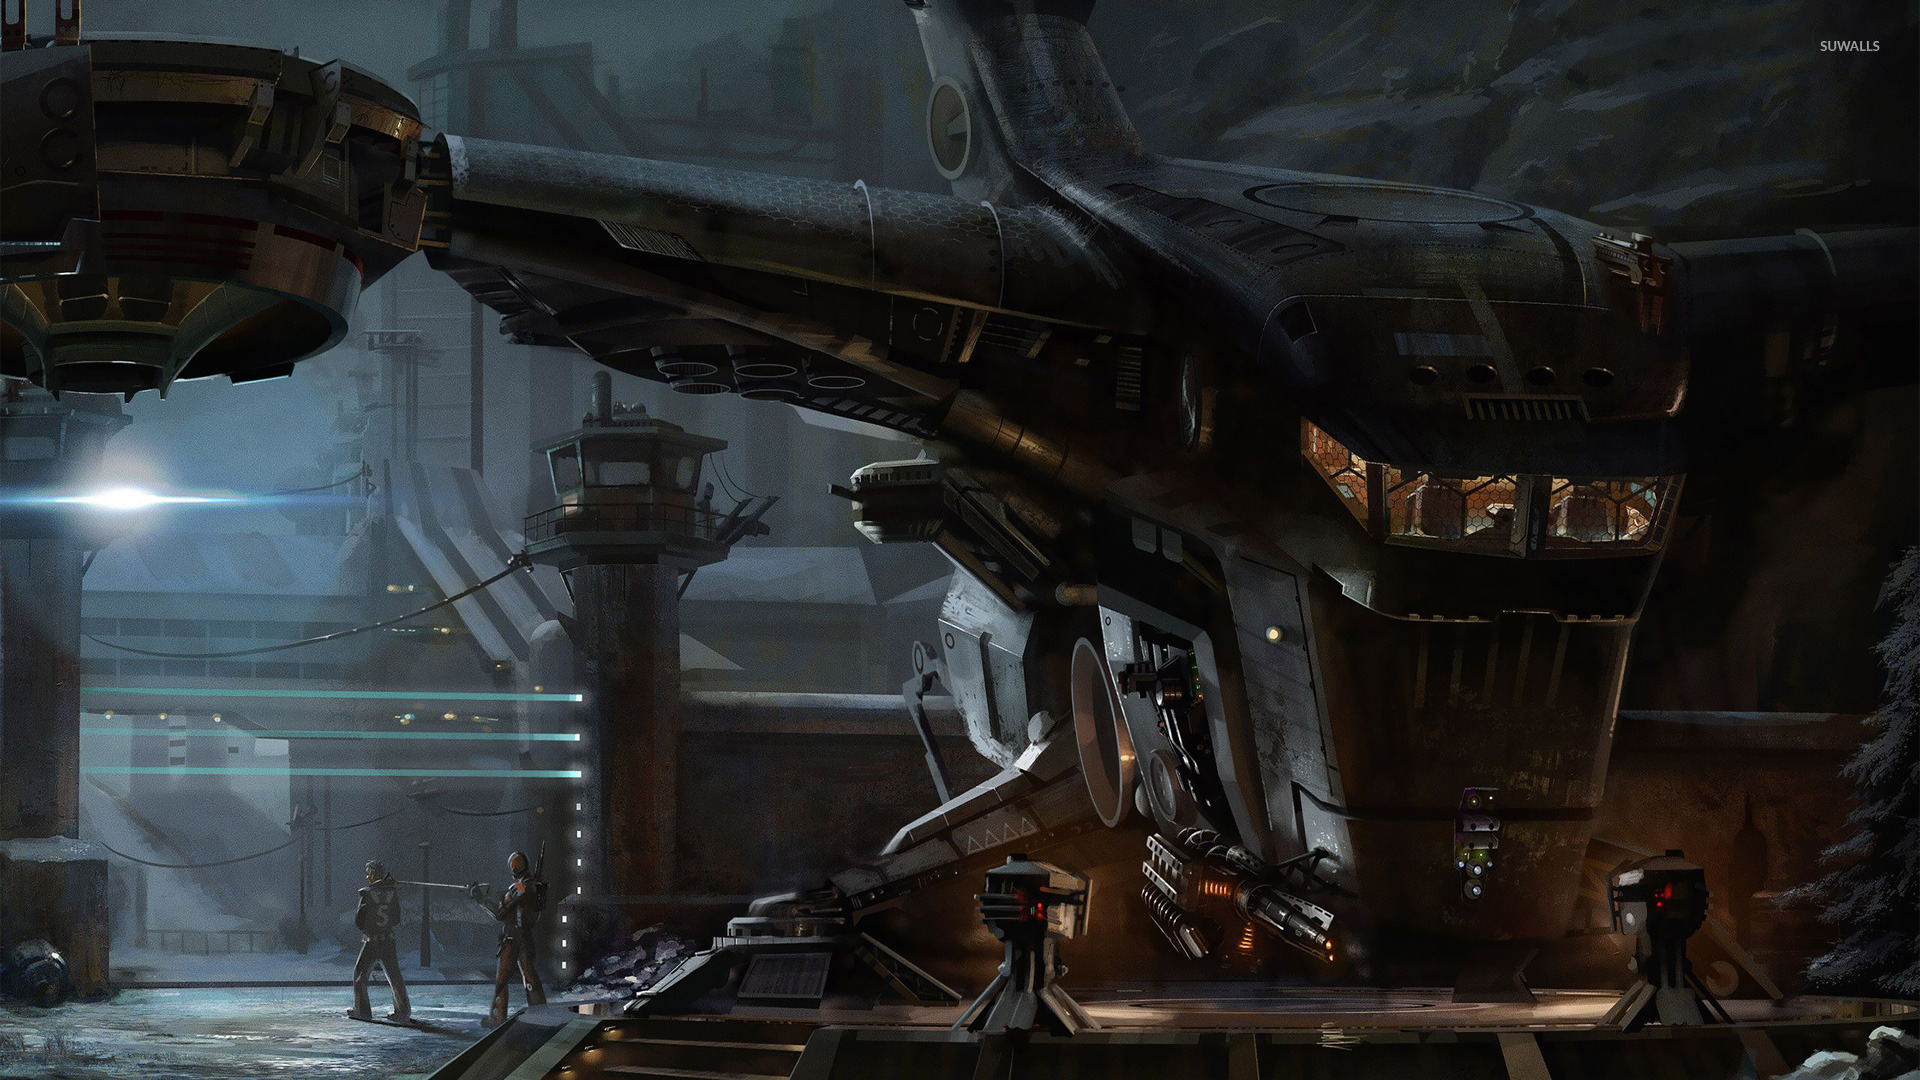 Futuristic space station wallpaper - Fantasy wallpapers ...